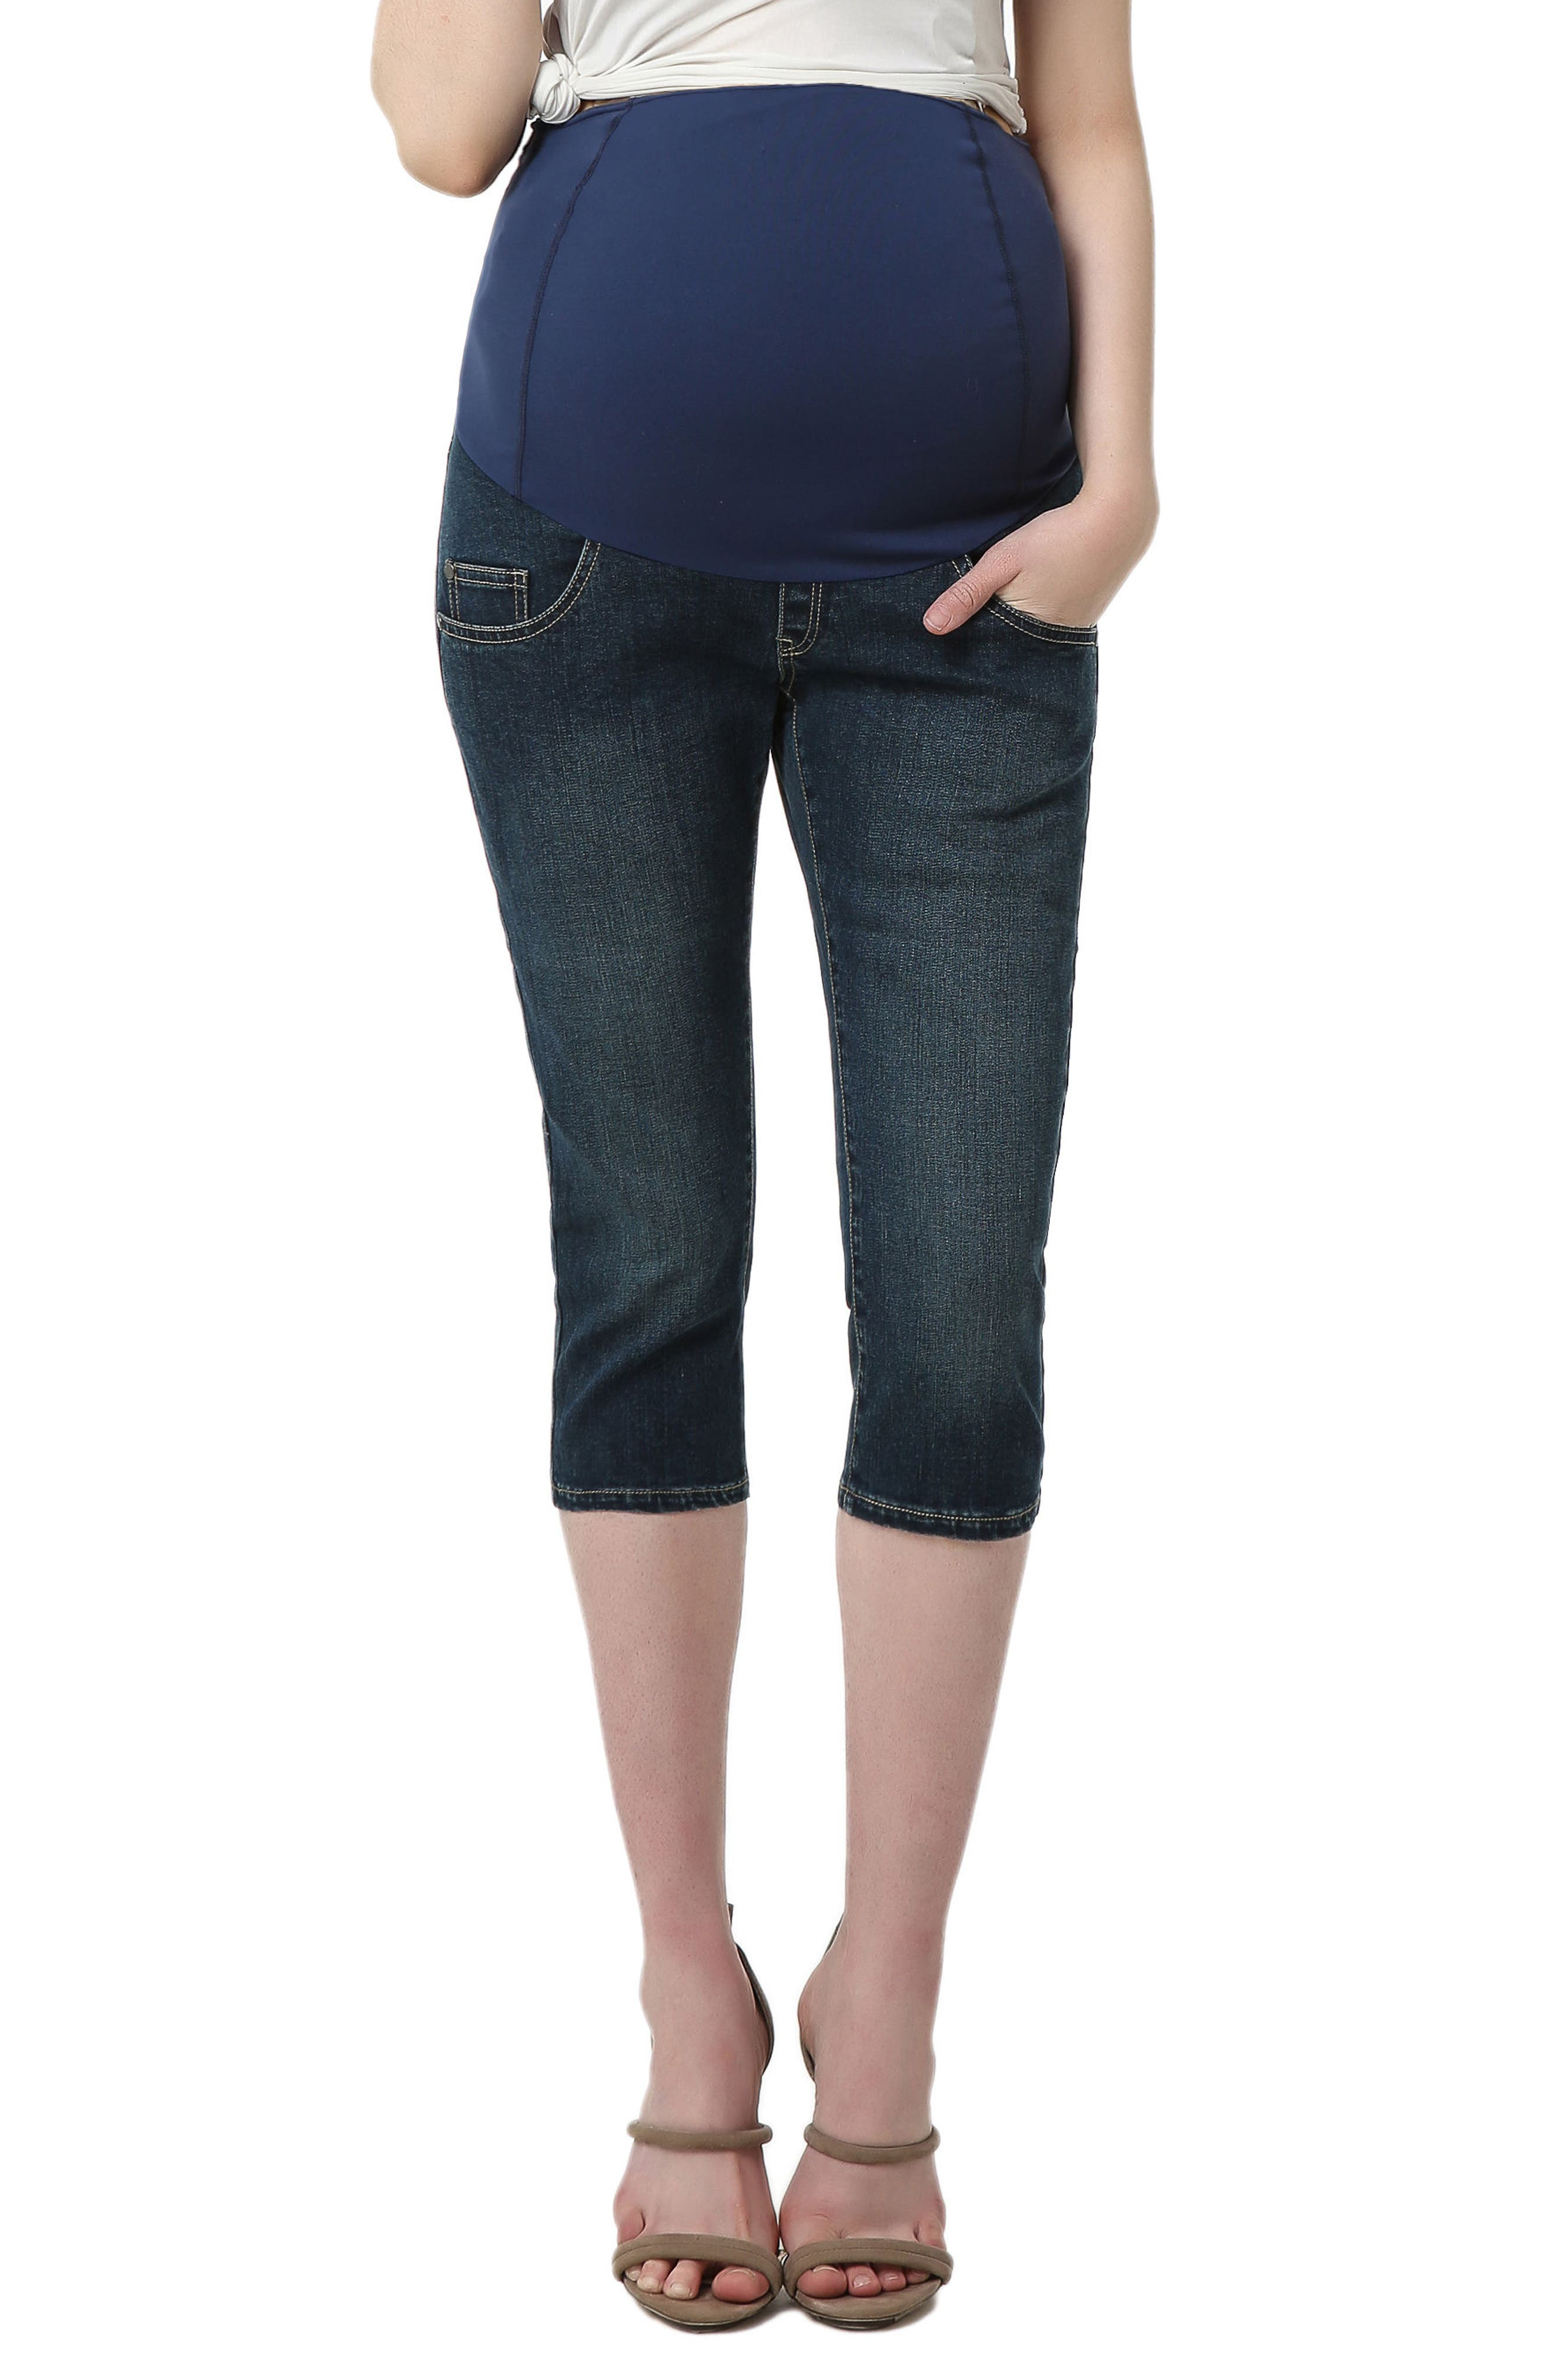 Women's Kimi And Kai Courtney Capri Maternity Skinny Jeans